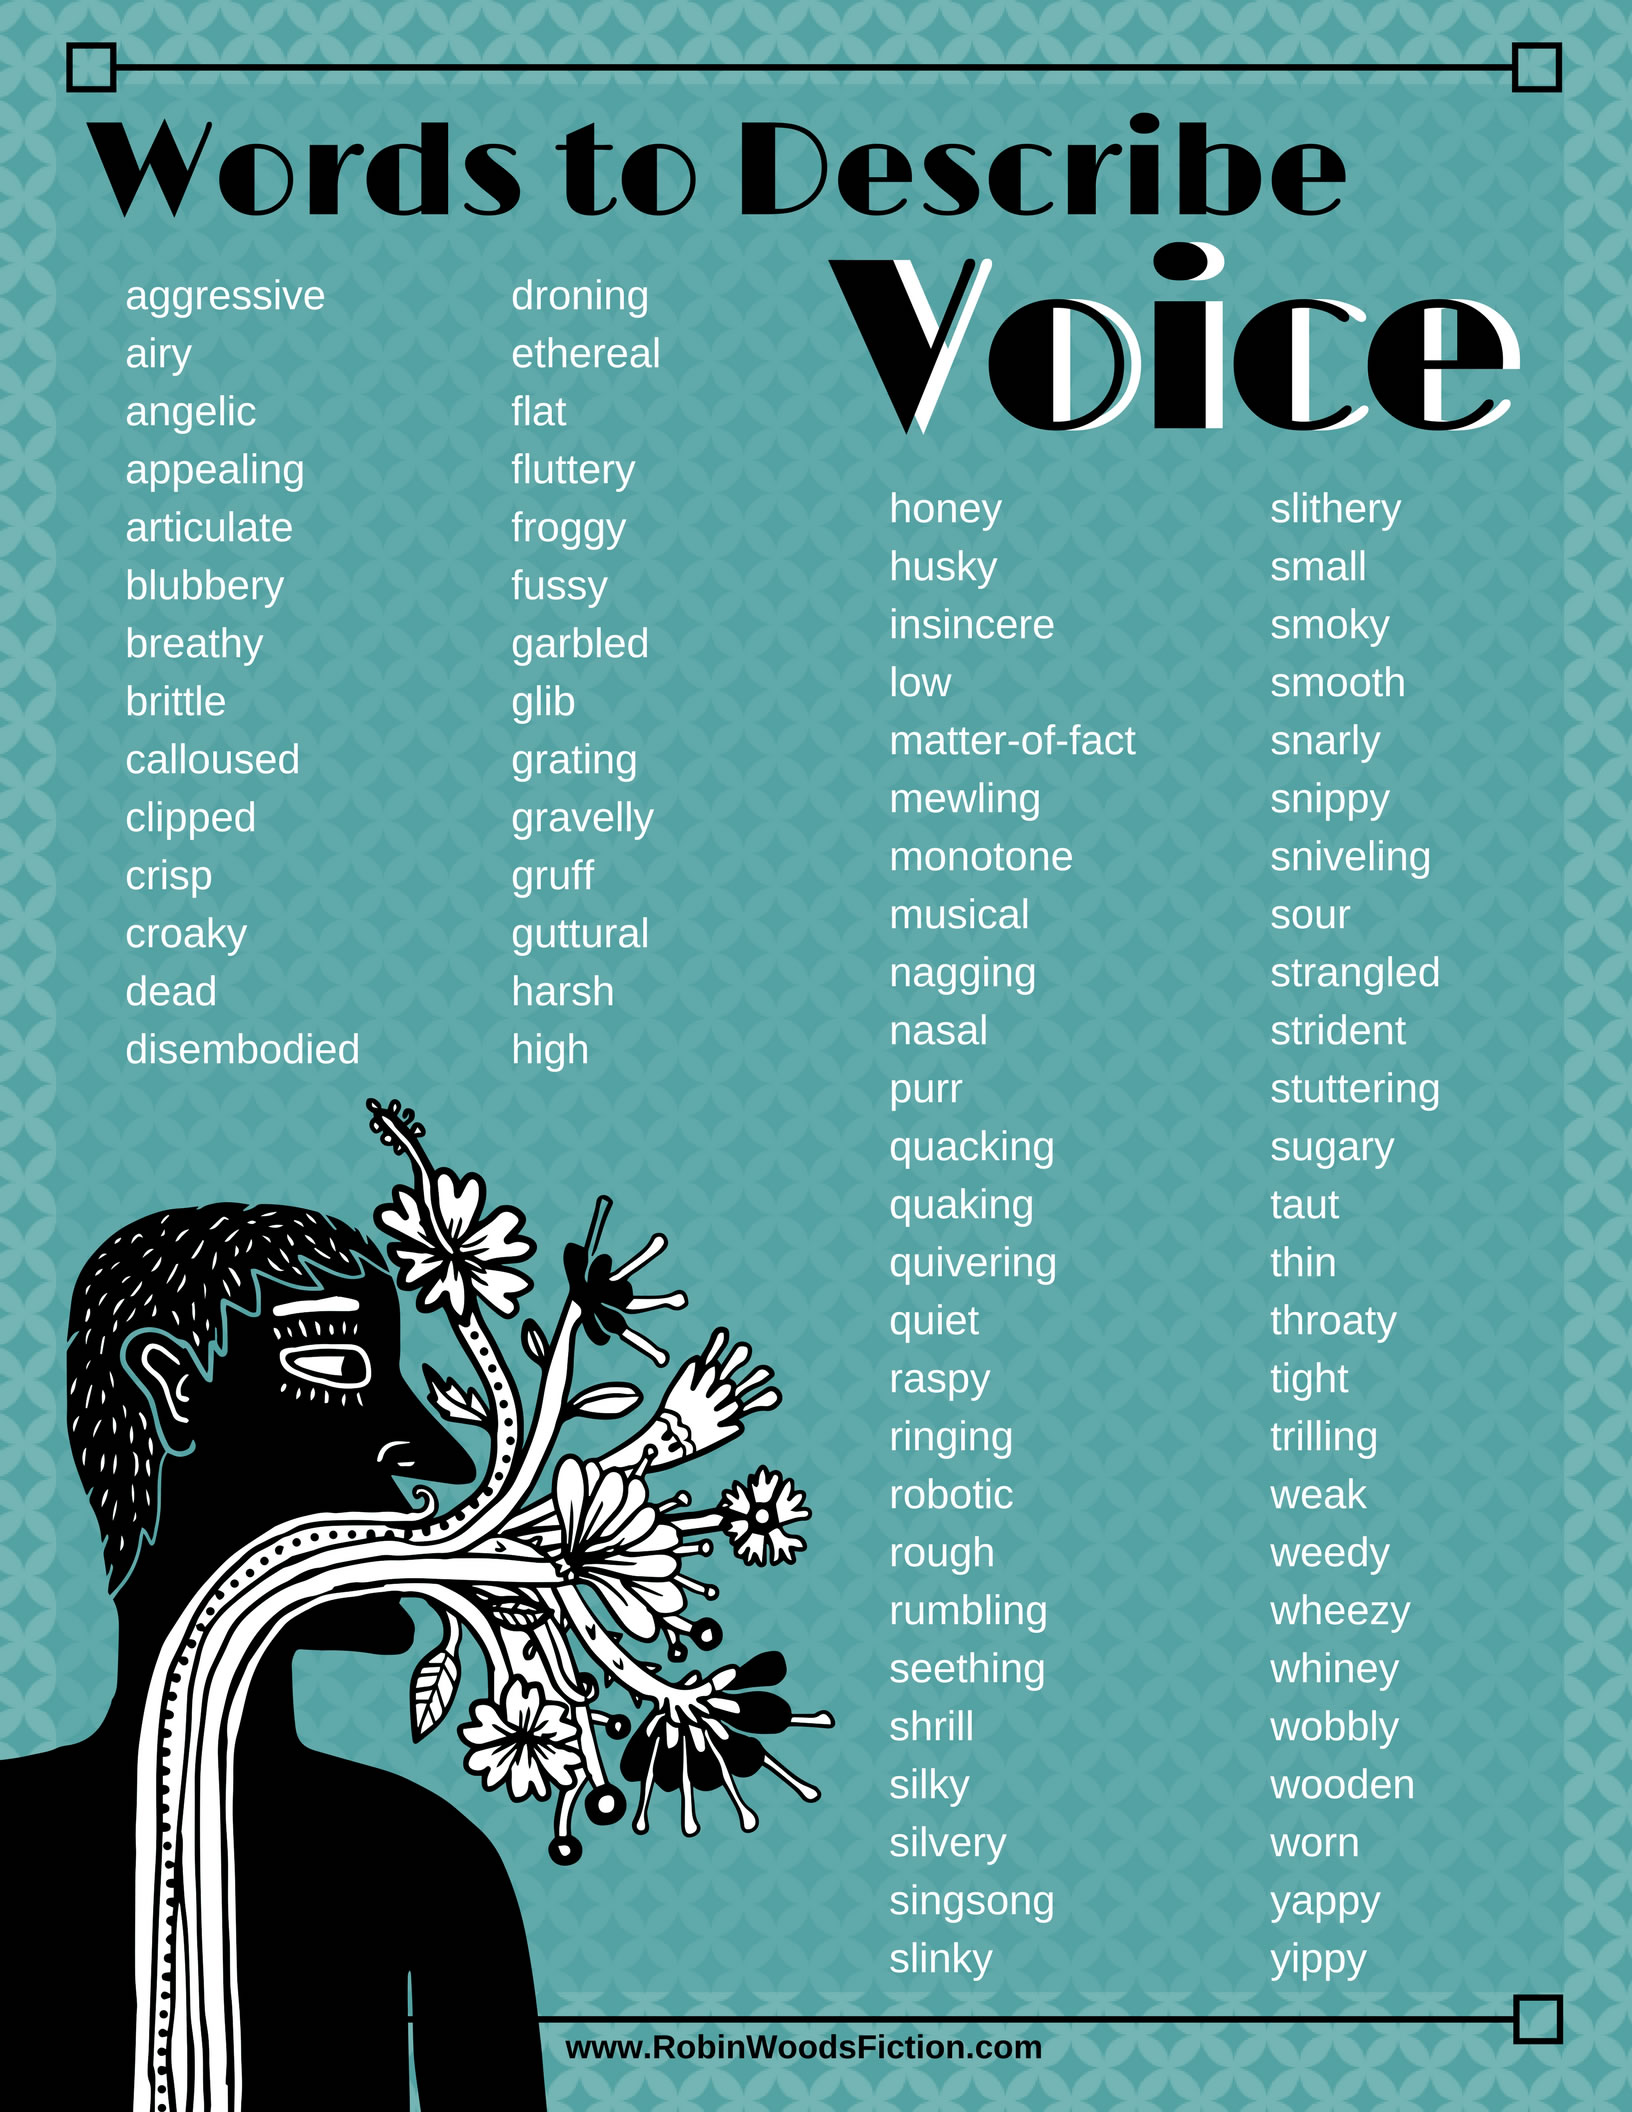 Writing Resource Words To Describe Voice Infographic. Physician Assistant Resume Template. Free Printable Daily Planner Template. Excel Inventory Spreadsheet Templates Tools. Art Internship Cover Letter. Resume Templates With Cover Letters Template. Real Estate Business Plan. Free Award Certificate Templates. Order Form Excel Template